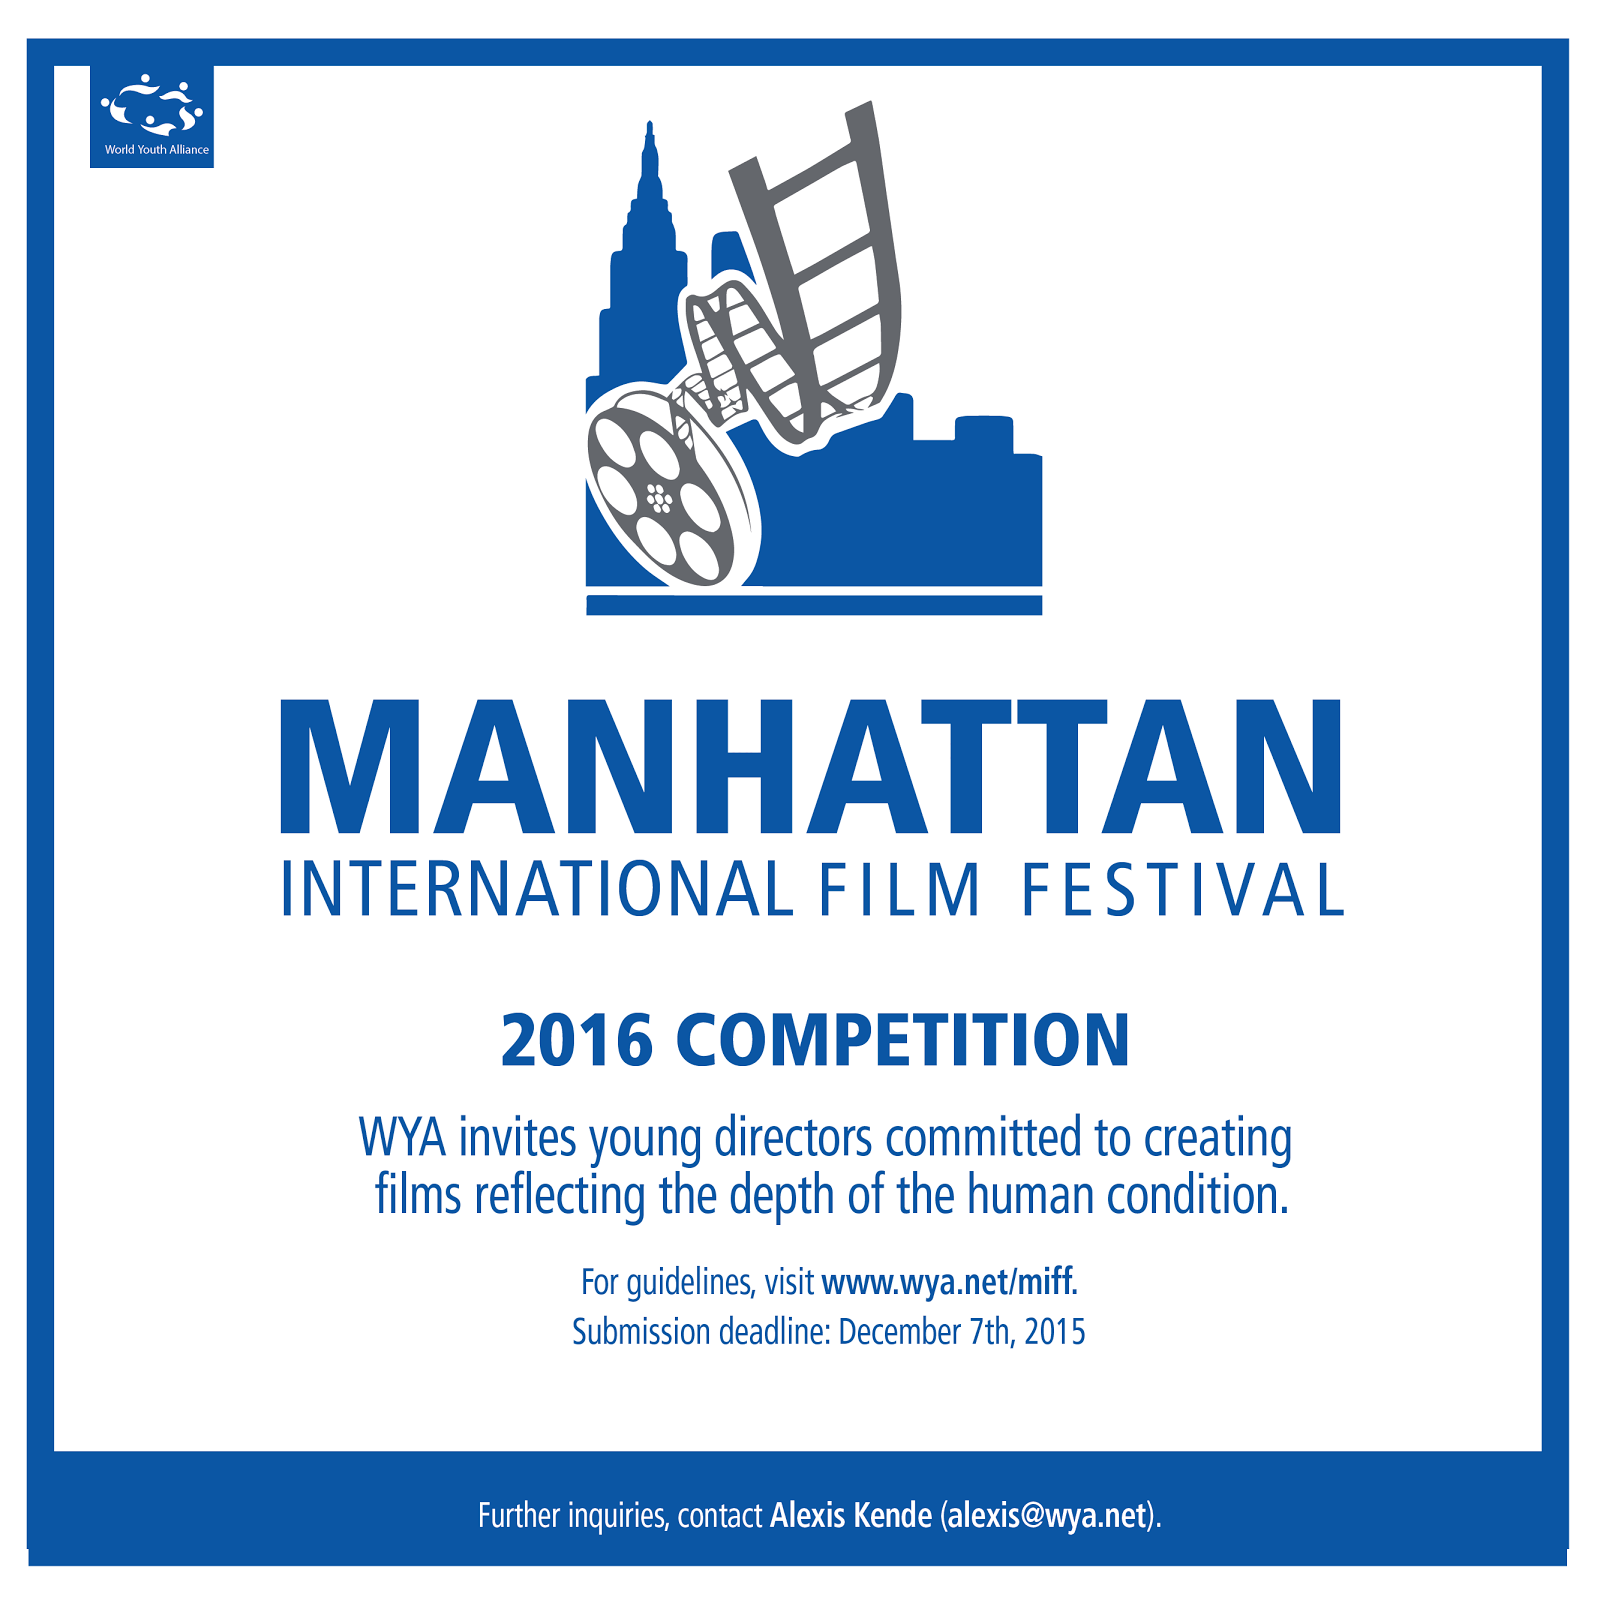 MANHATTAN INTERNATIONAL FILM FESTIVAL 2016